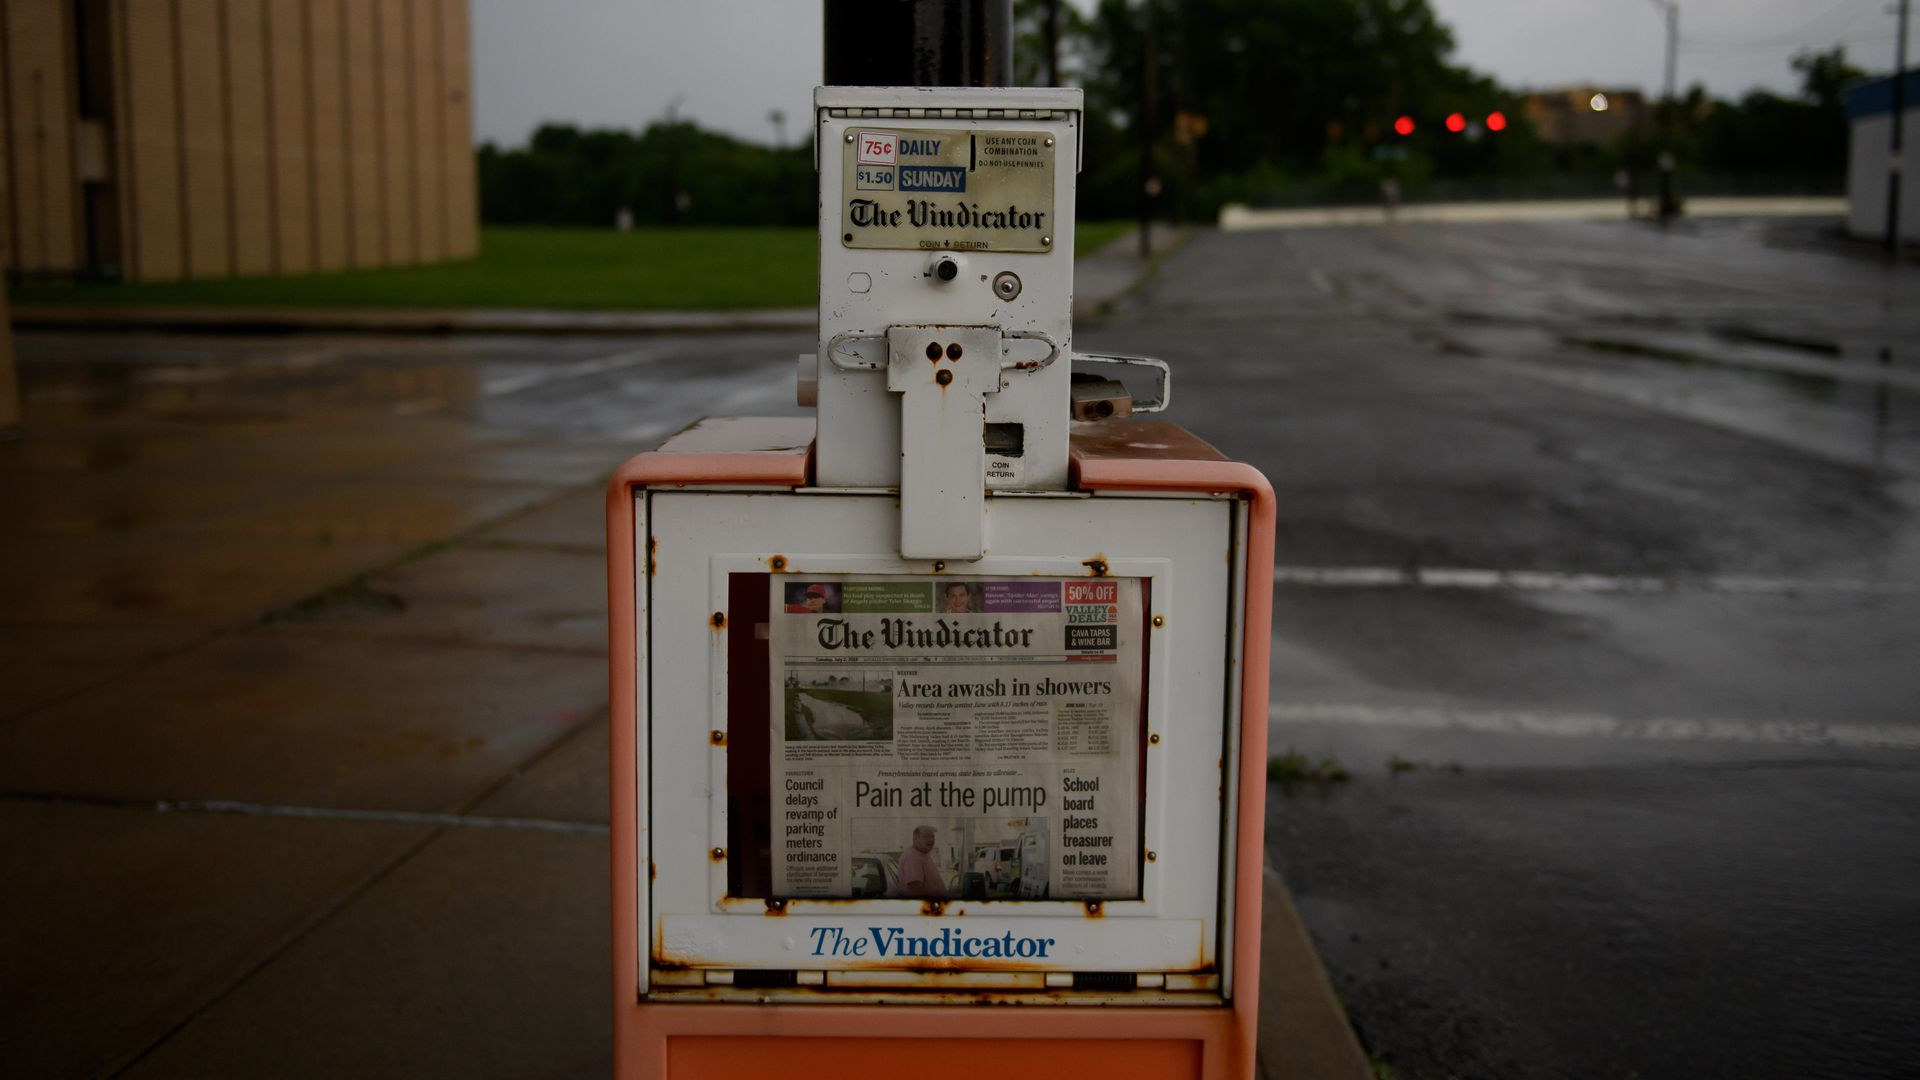 A news paper stand for The Vindicator in Youngstown, Ohio.